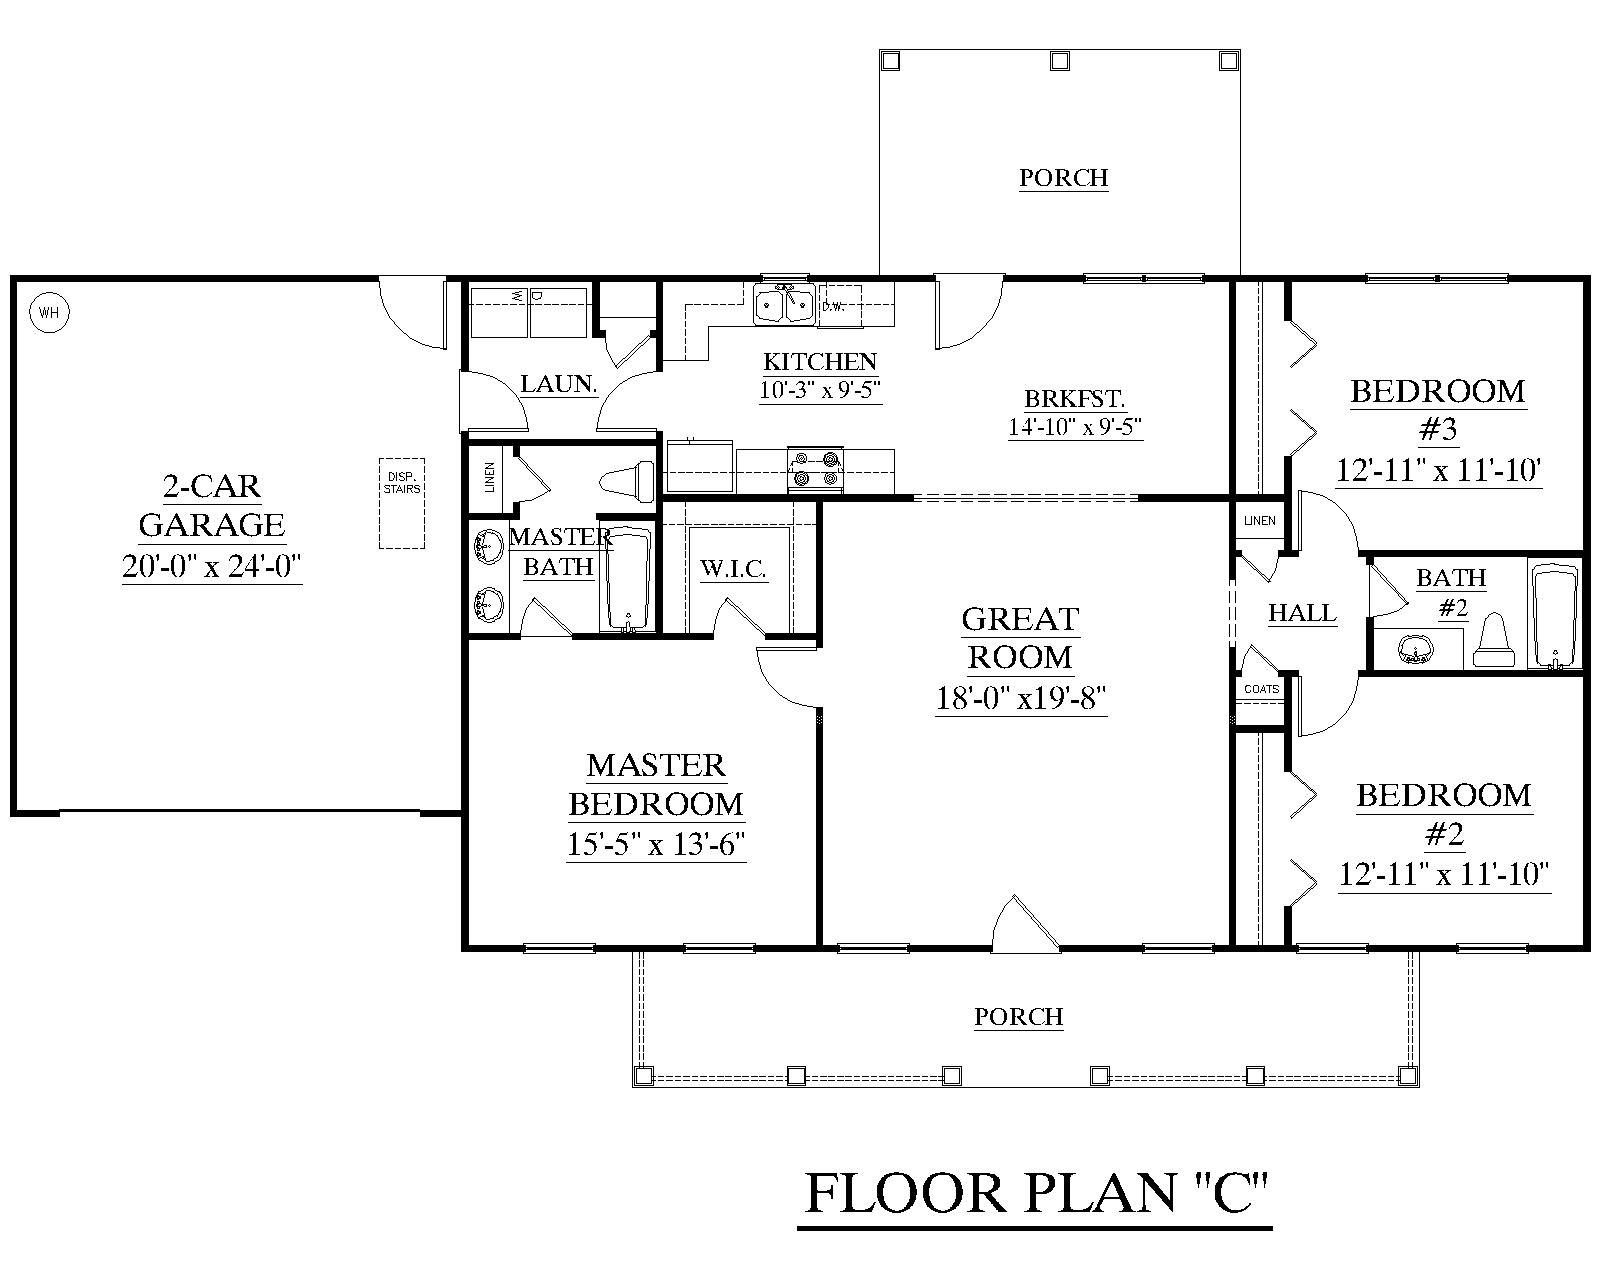 House plan 1500 c the james c attractive one story ranch Split bedroom house plans